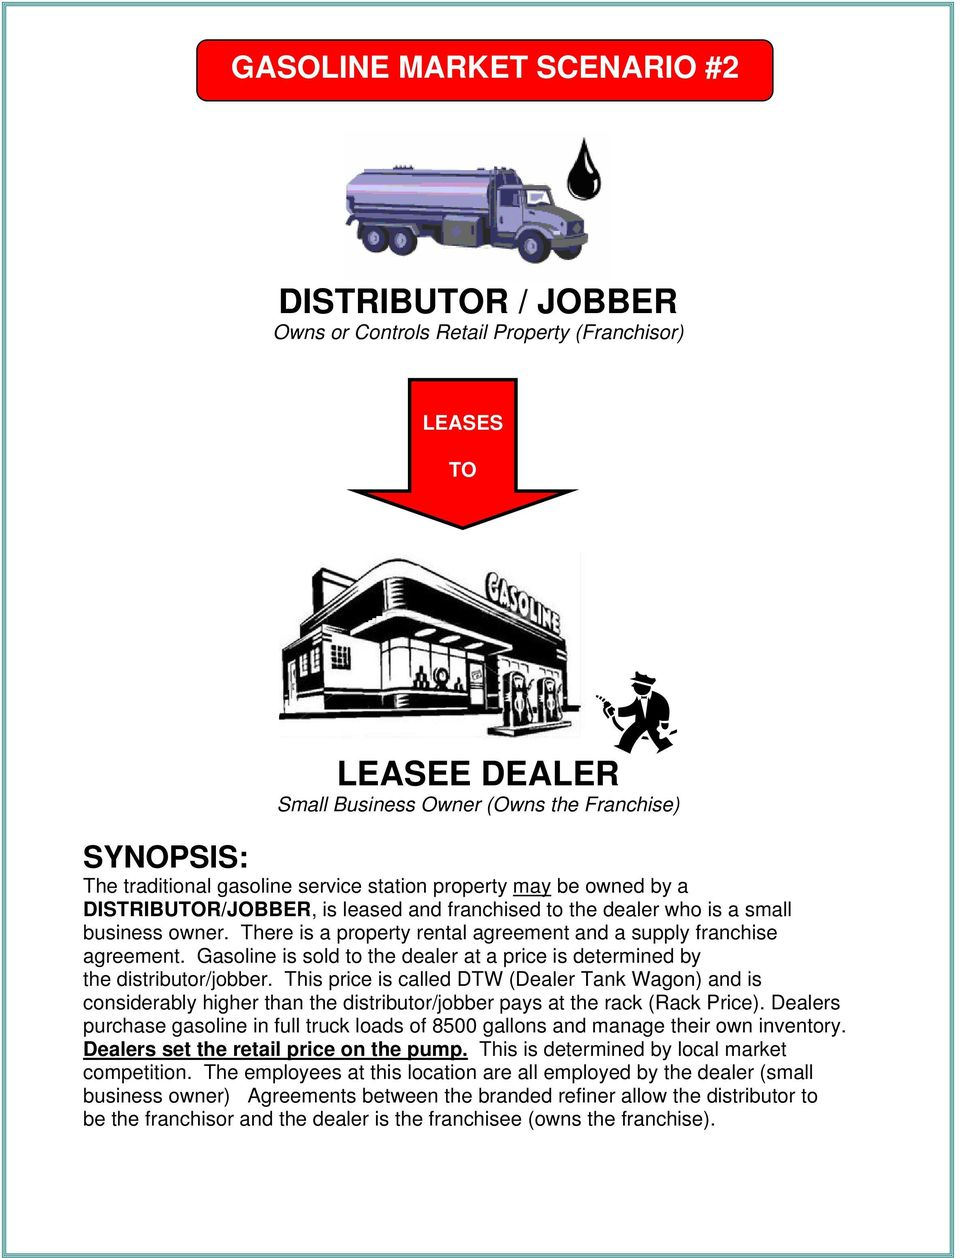 Gasoline is sold to the dealer at a price is determined by the distributor/jobber.